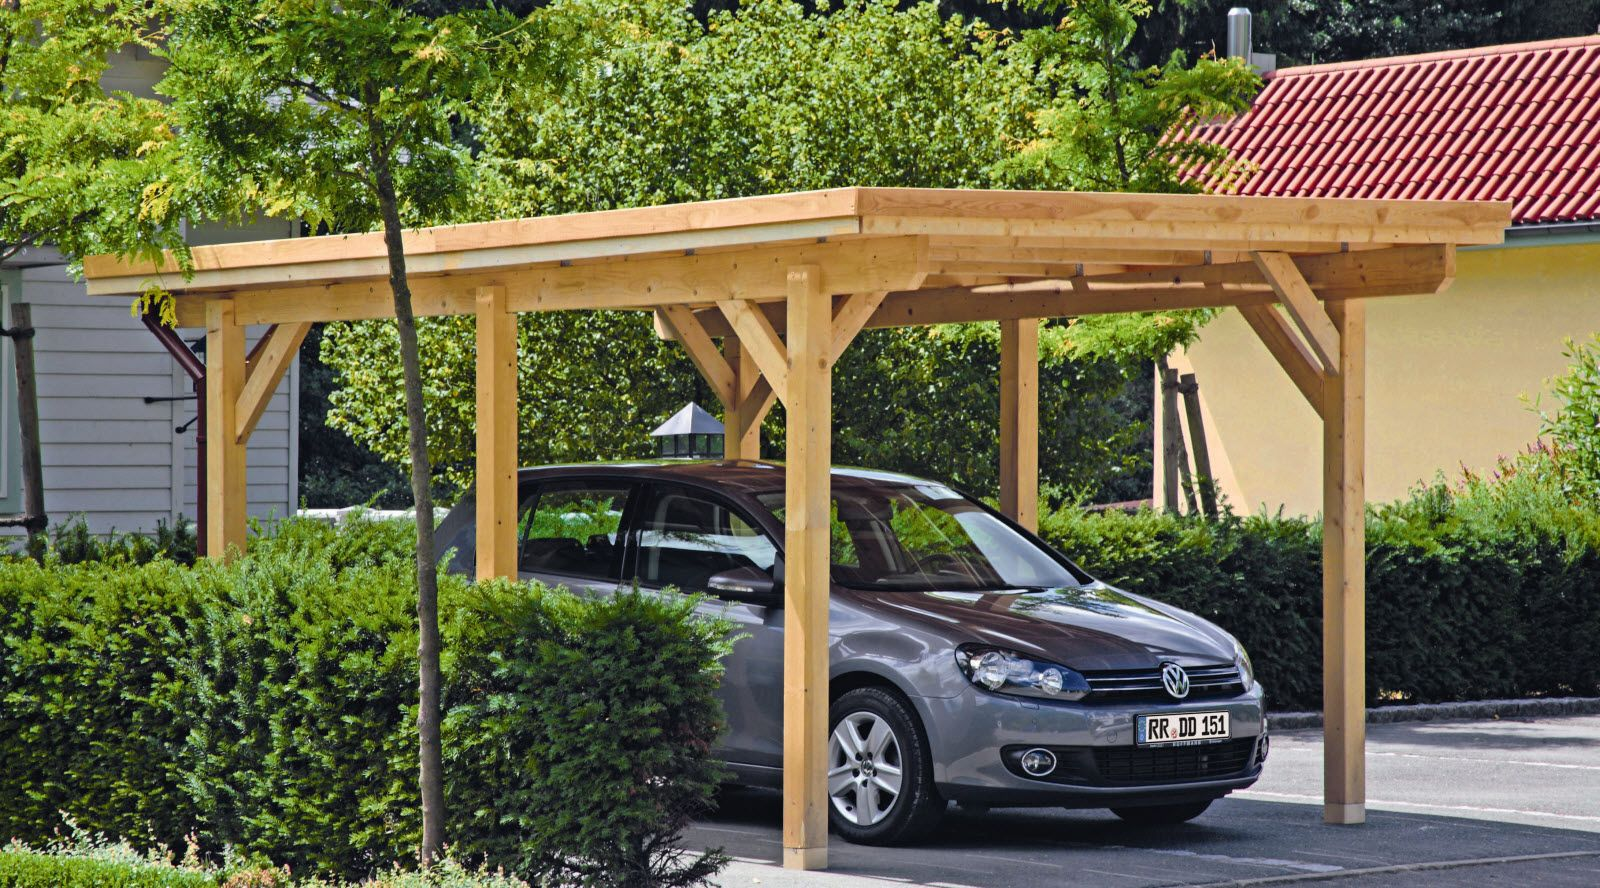 lohnt es sich den carport selbst zu bauen carport bauen ideen pinterest holz carports. Black Bedroom Furniture Sets. Home Design Ideas